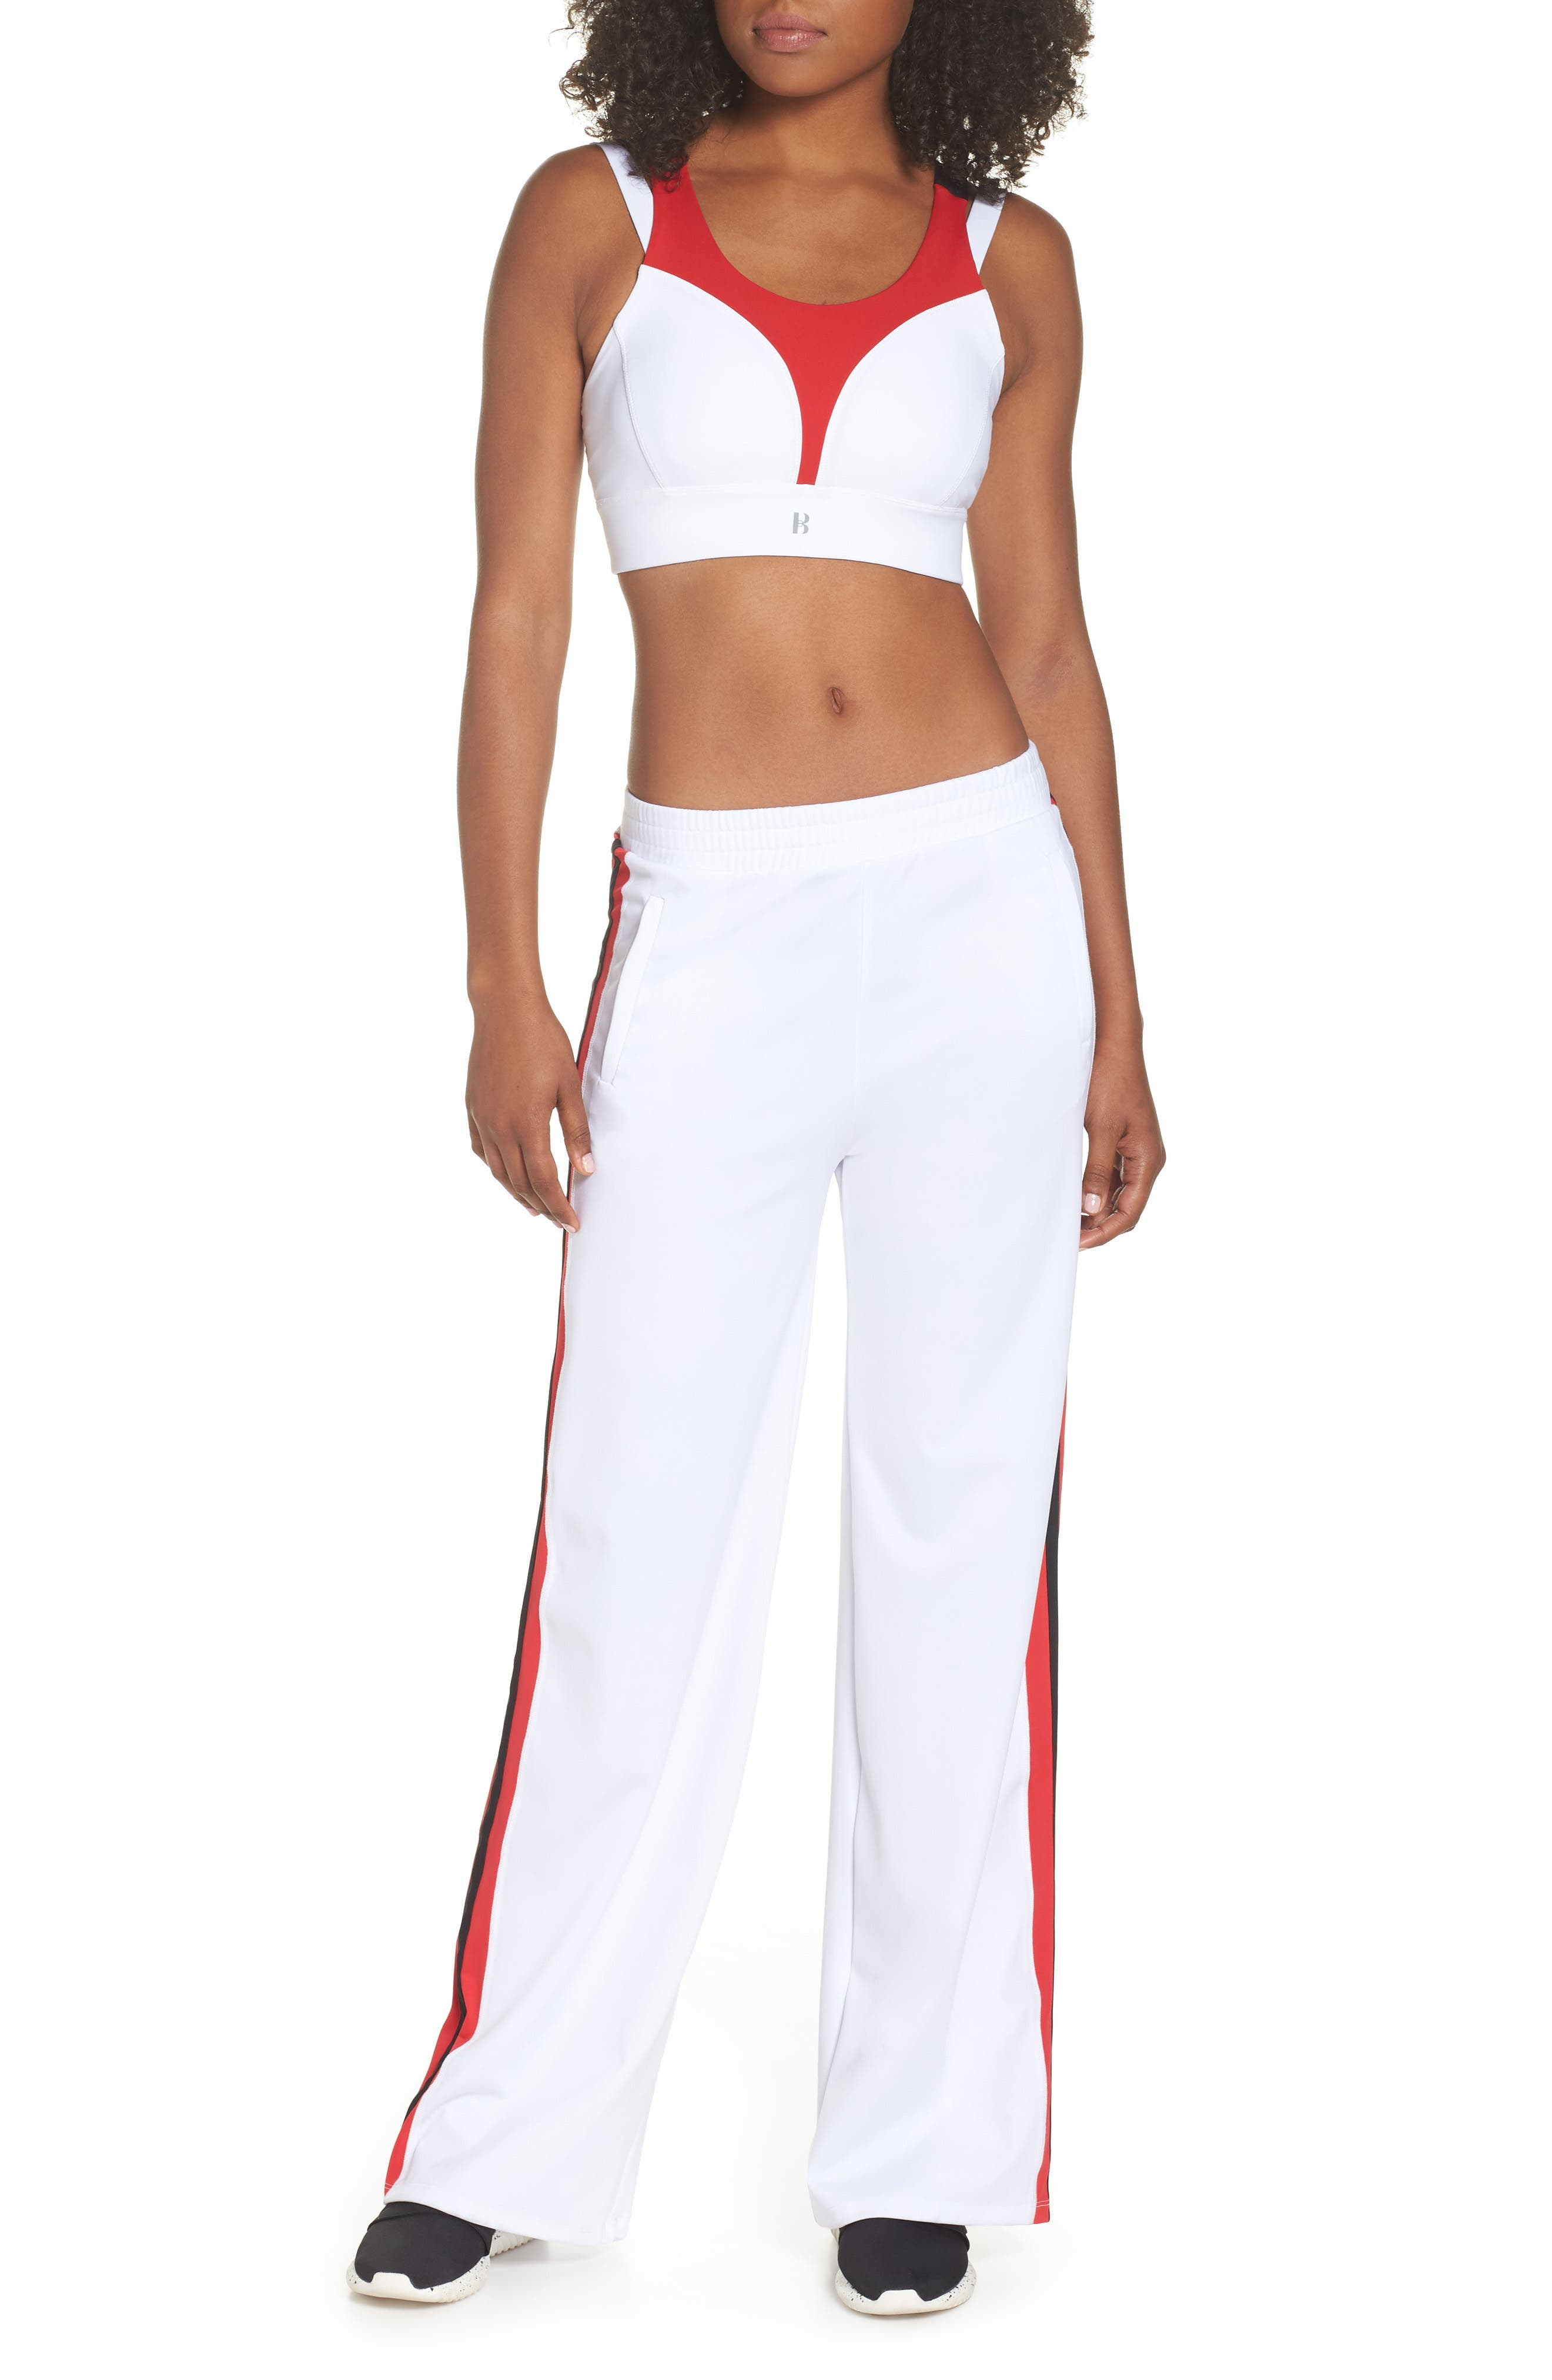 BoomBoom Athletica Compression Support Sports Bra,                             Alternate thumbnail 8, color,                             WHITE/ RED